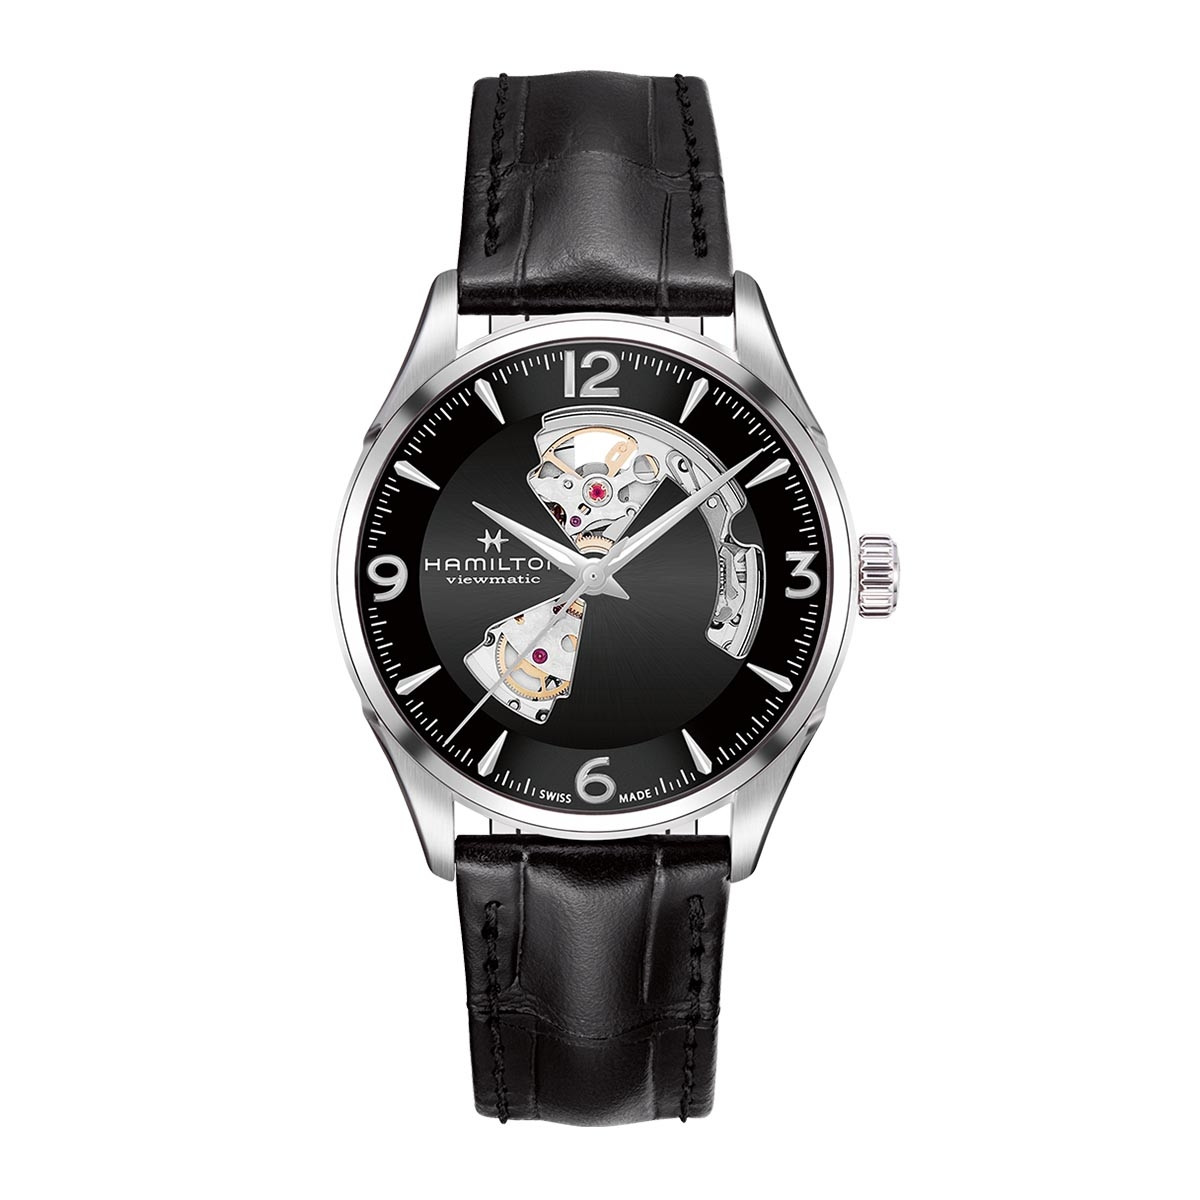 New Man's Hamilton Jazzmaster Open Heart